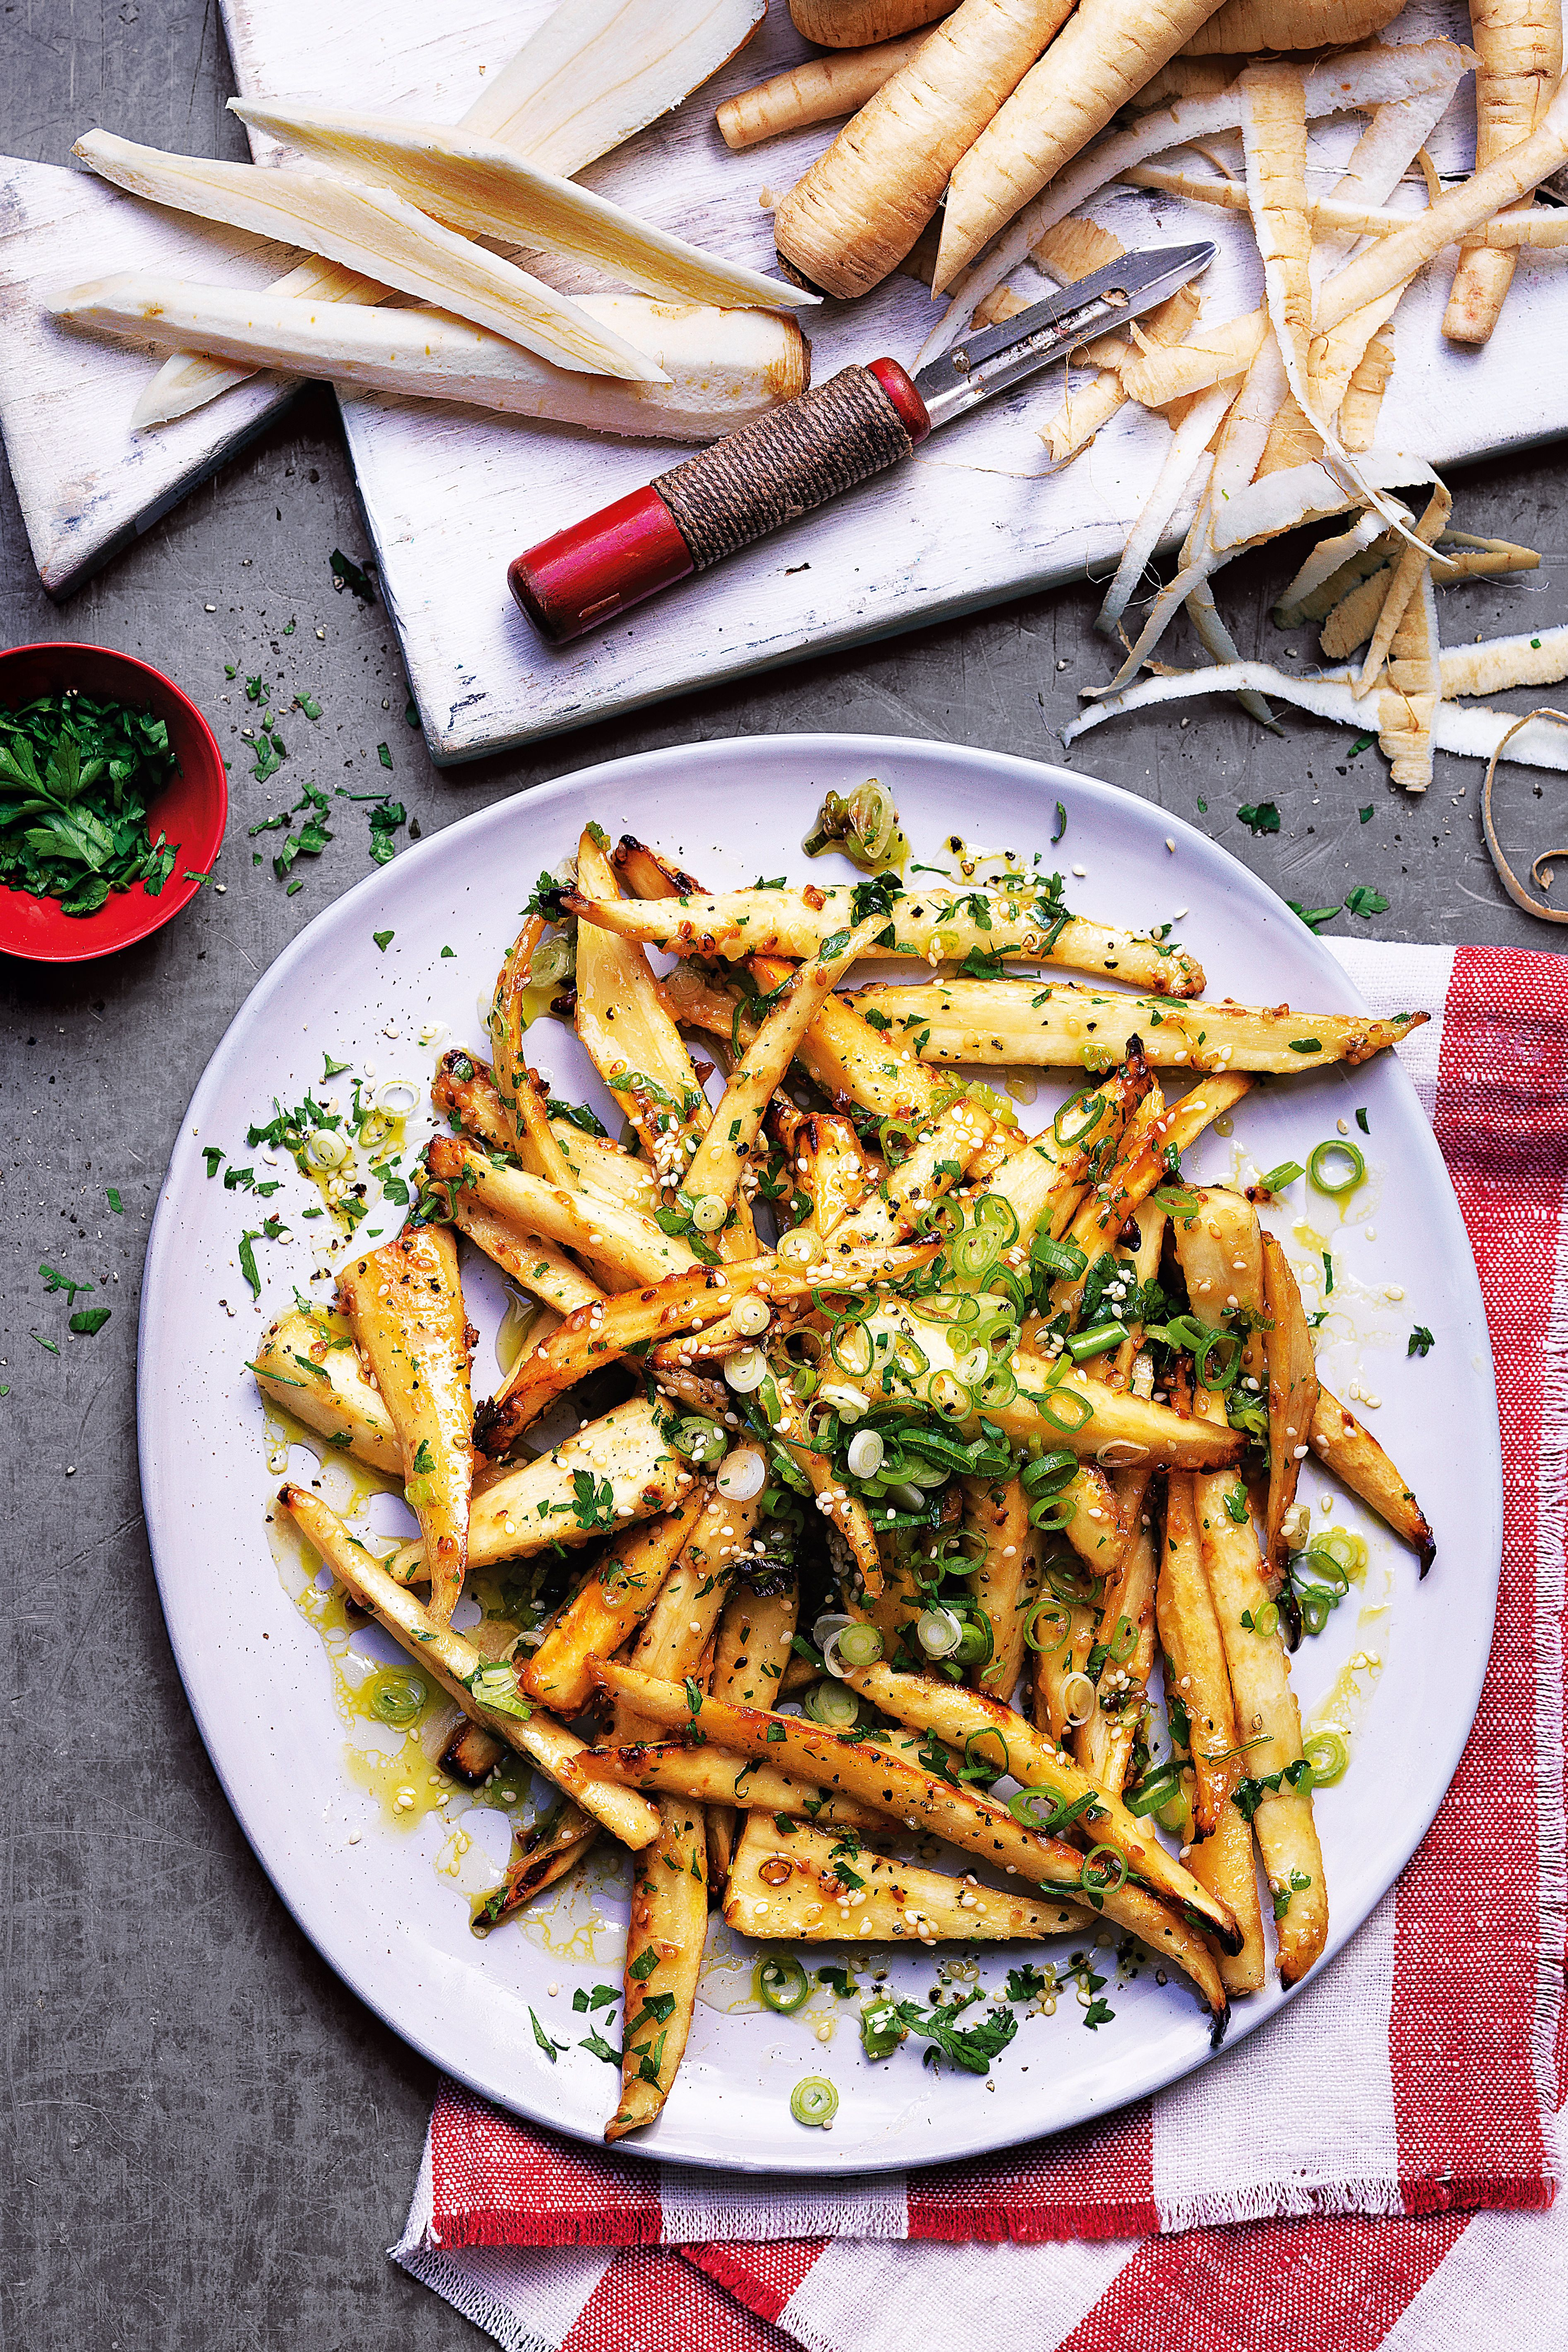 miso and honey baked parsnips recipe pinterest christmas side onions and dishes - Christmas Side Dishes Pinterest